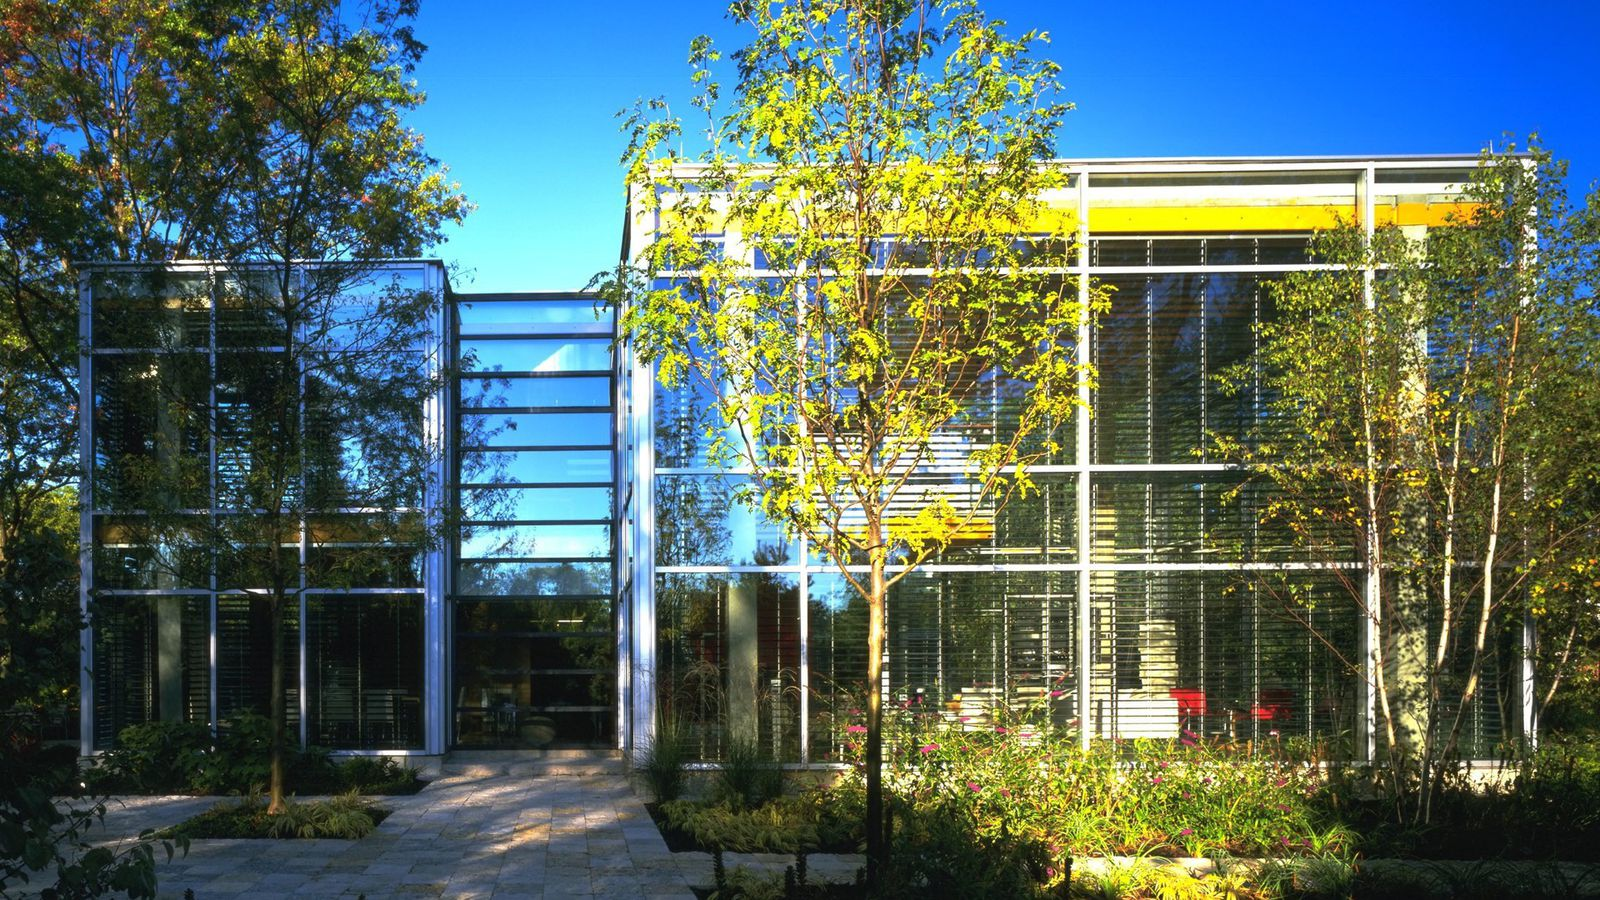 Chicago architect lists suburban glass house for 31M